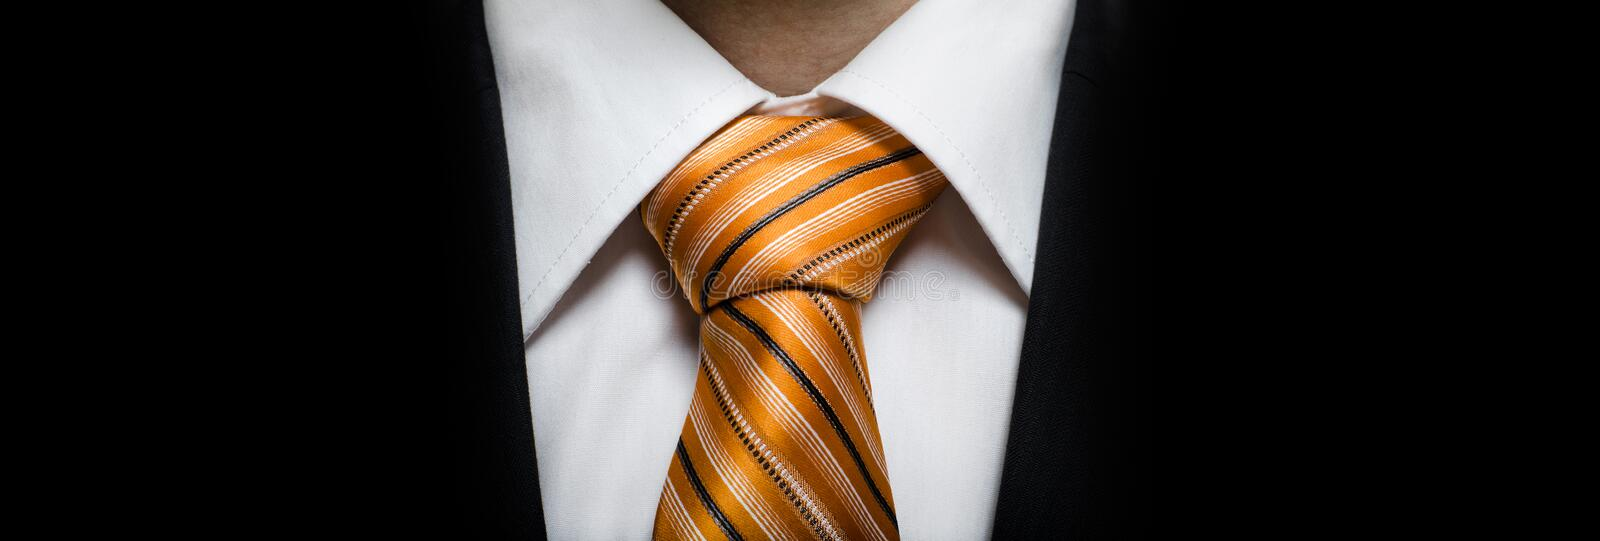 Business costume stock images